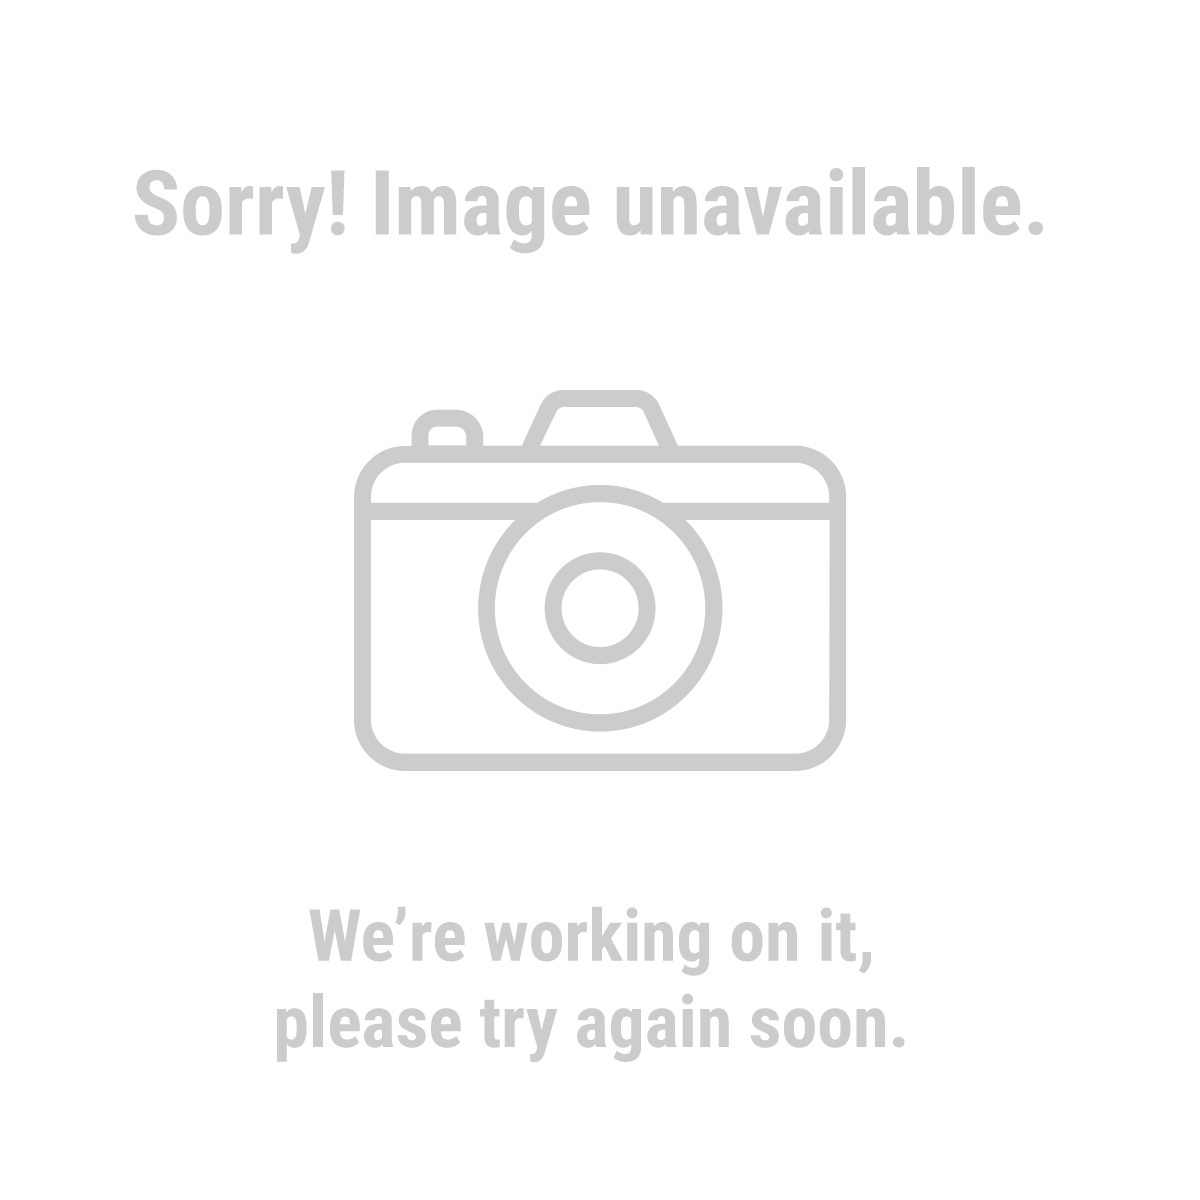 Storehouse 67570 50 Piece Grease Fitting Assortment